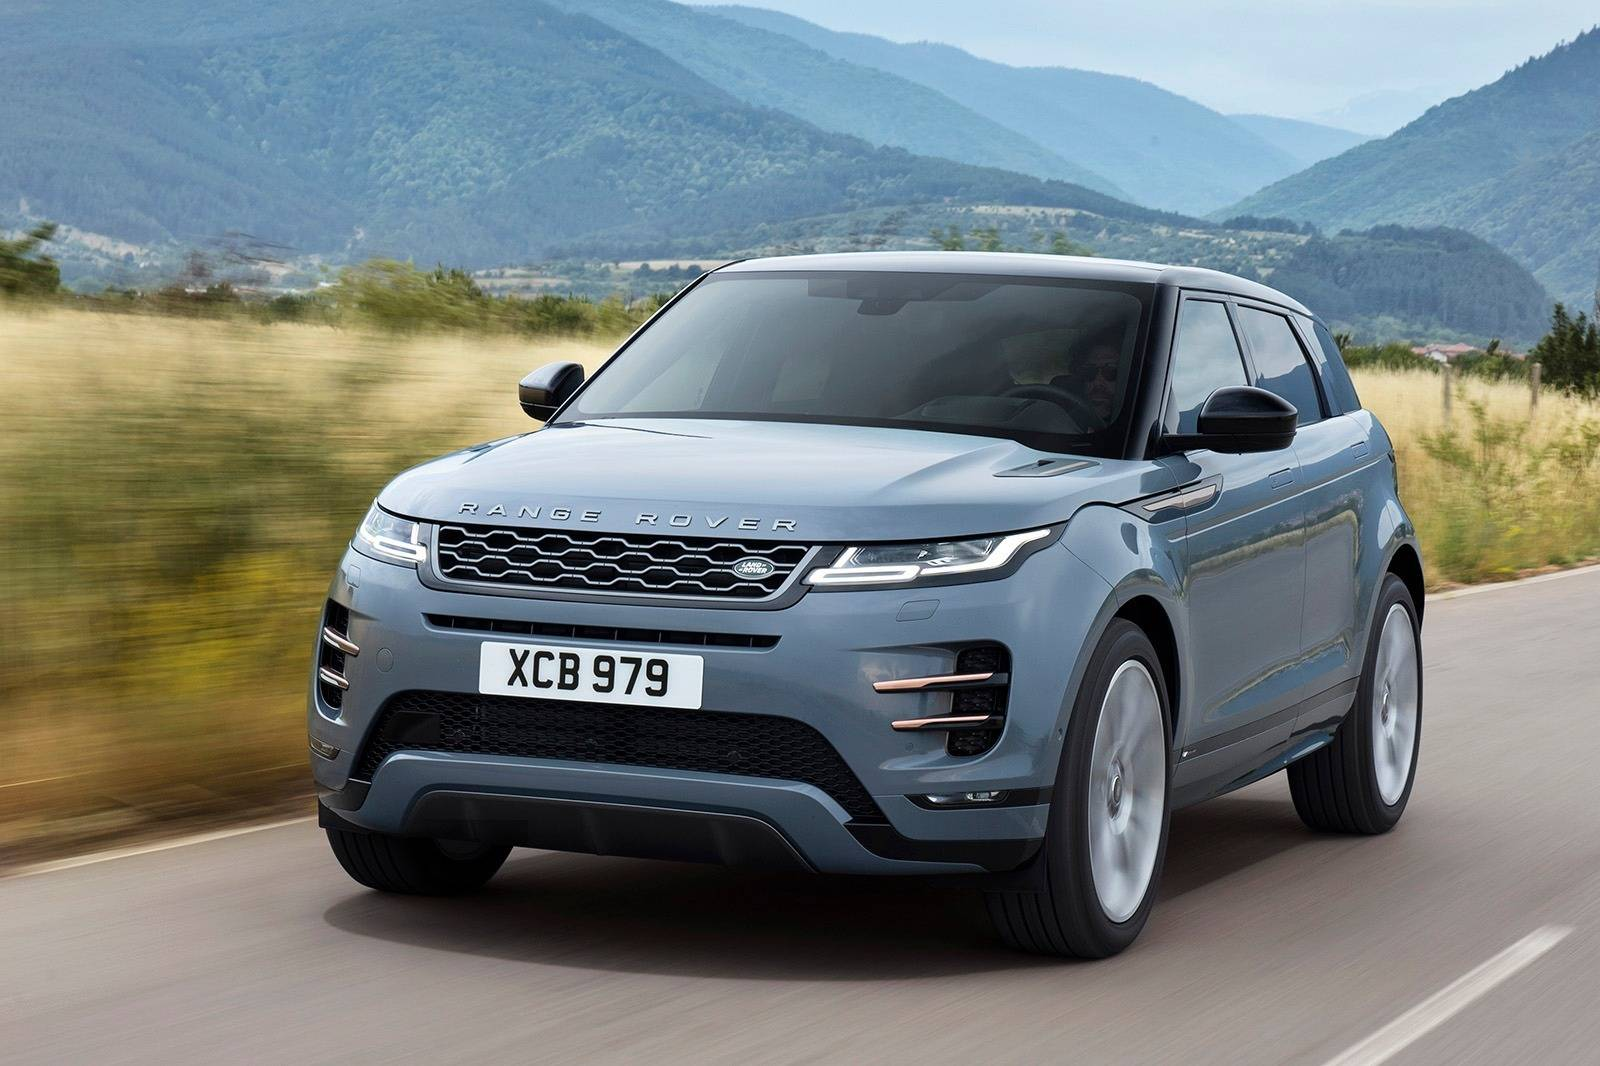 21 New 2020 Range Rover Evoque Xl Price and Review